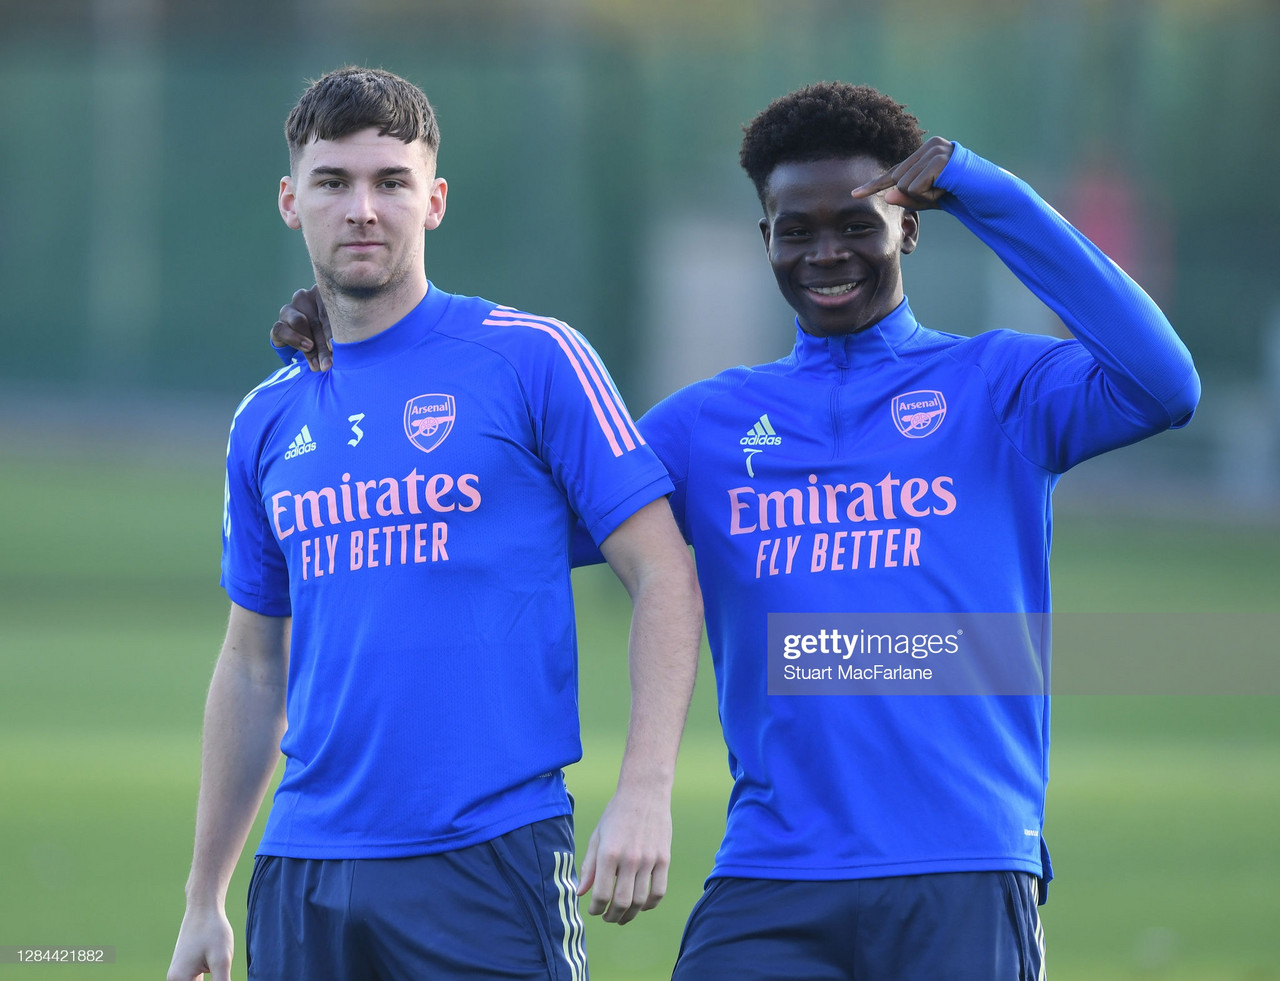 Preview: Arsenal players heading to Euro 2020